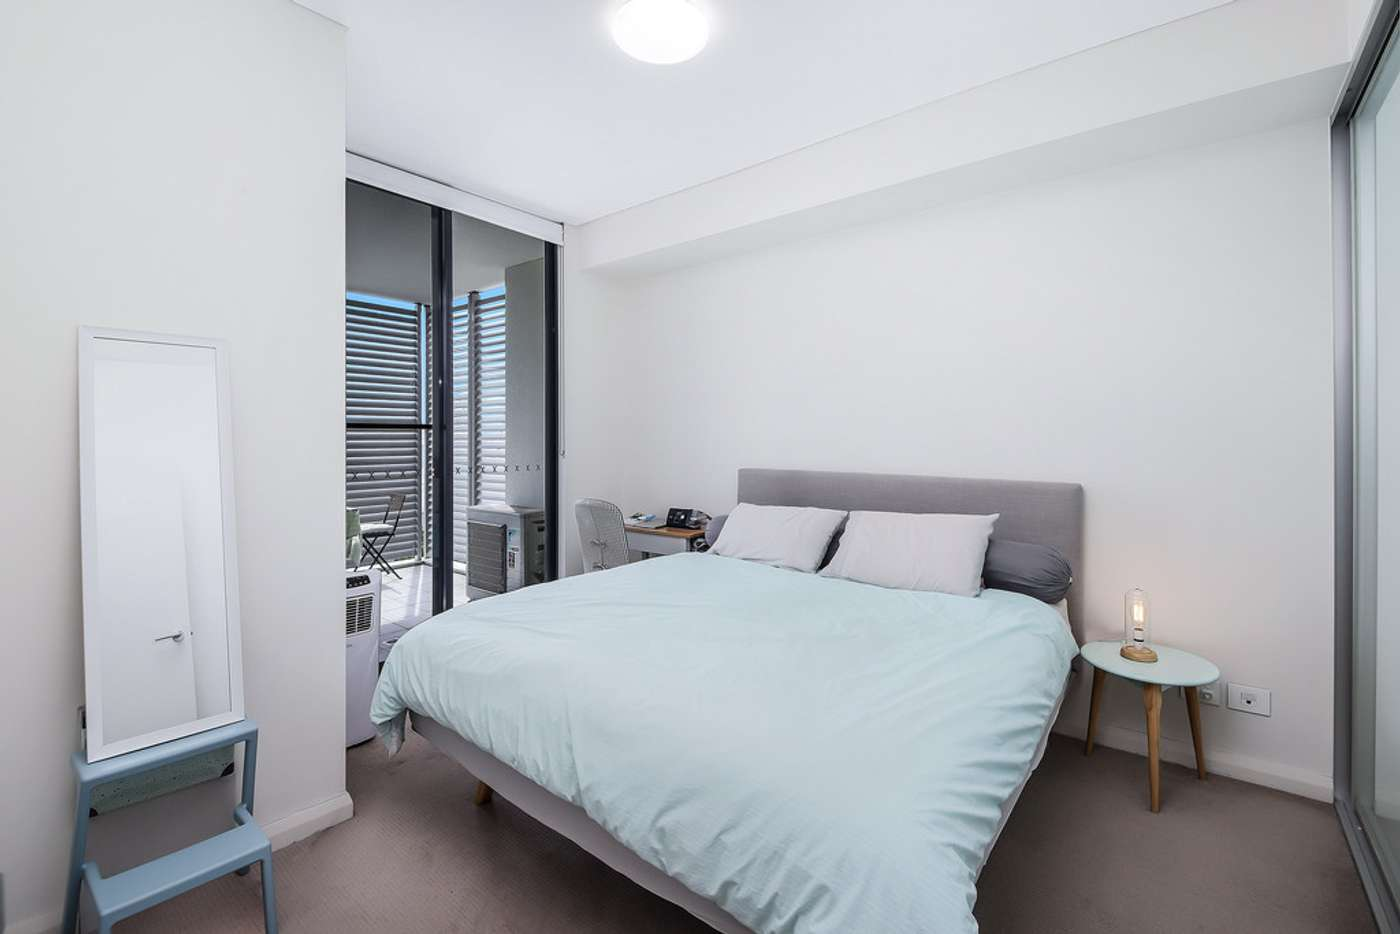 Sixth view of Homely apartment listing, 427/22 Baywater Drive, Wentworth Point NSW 2127